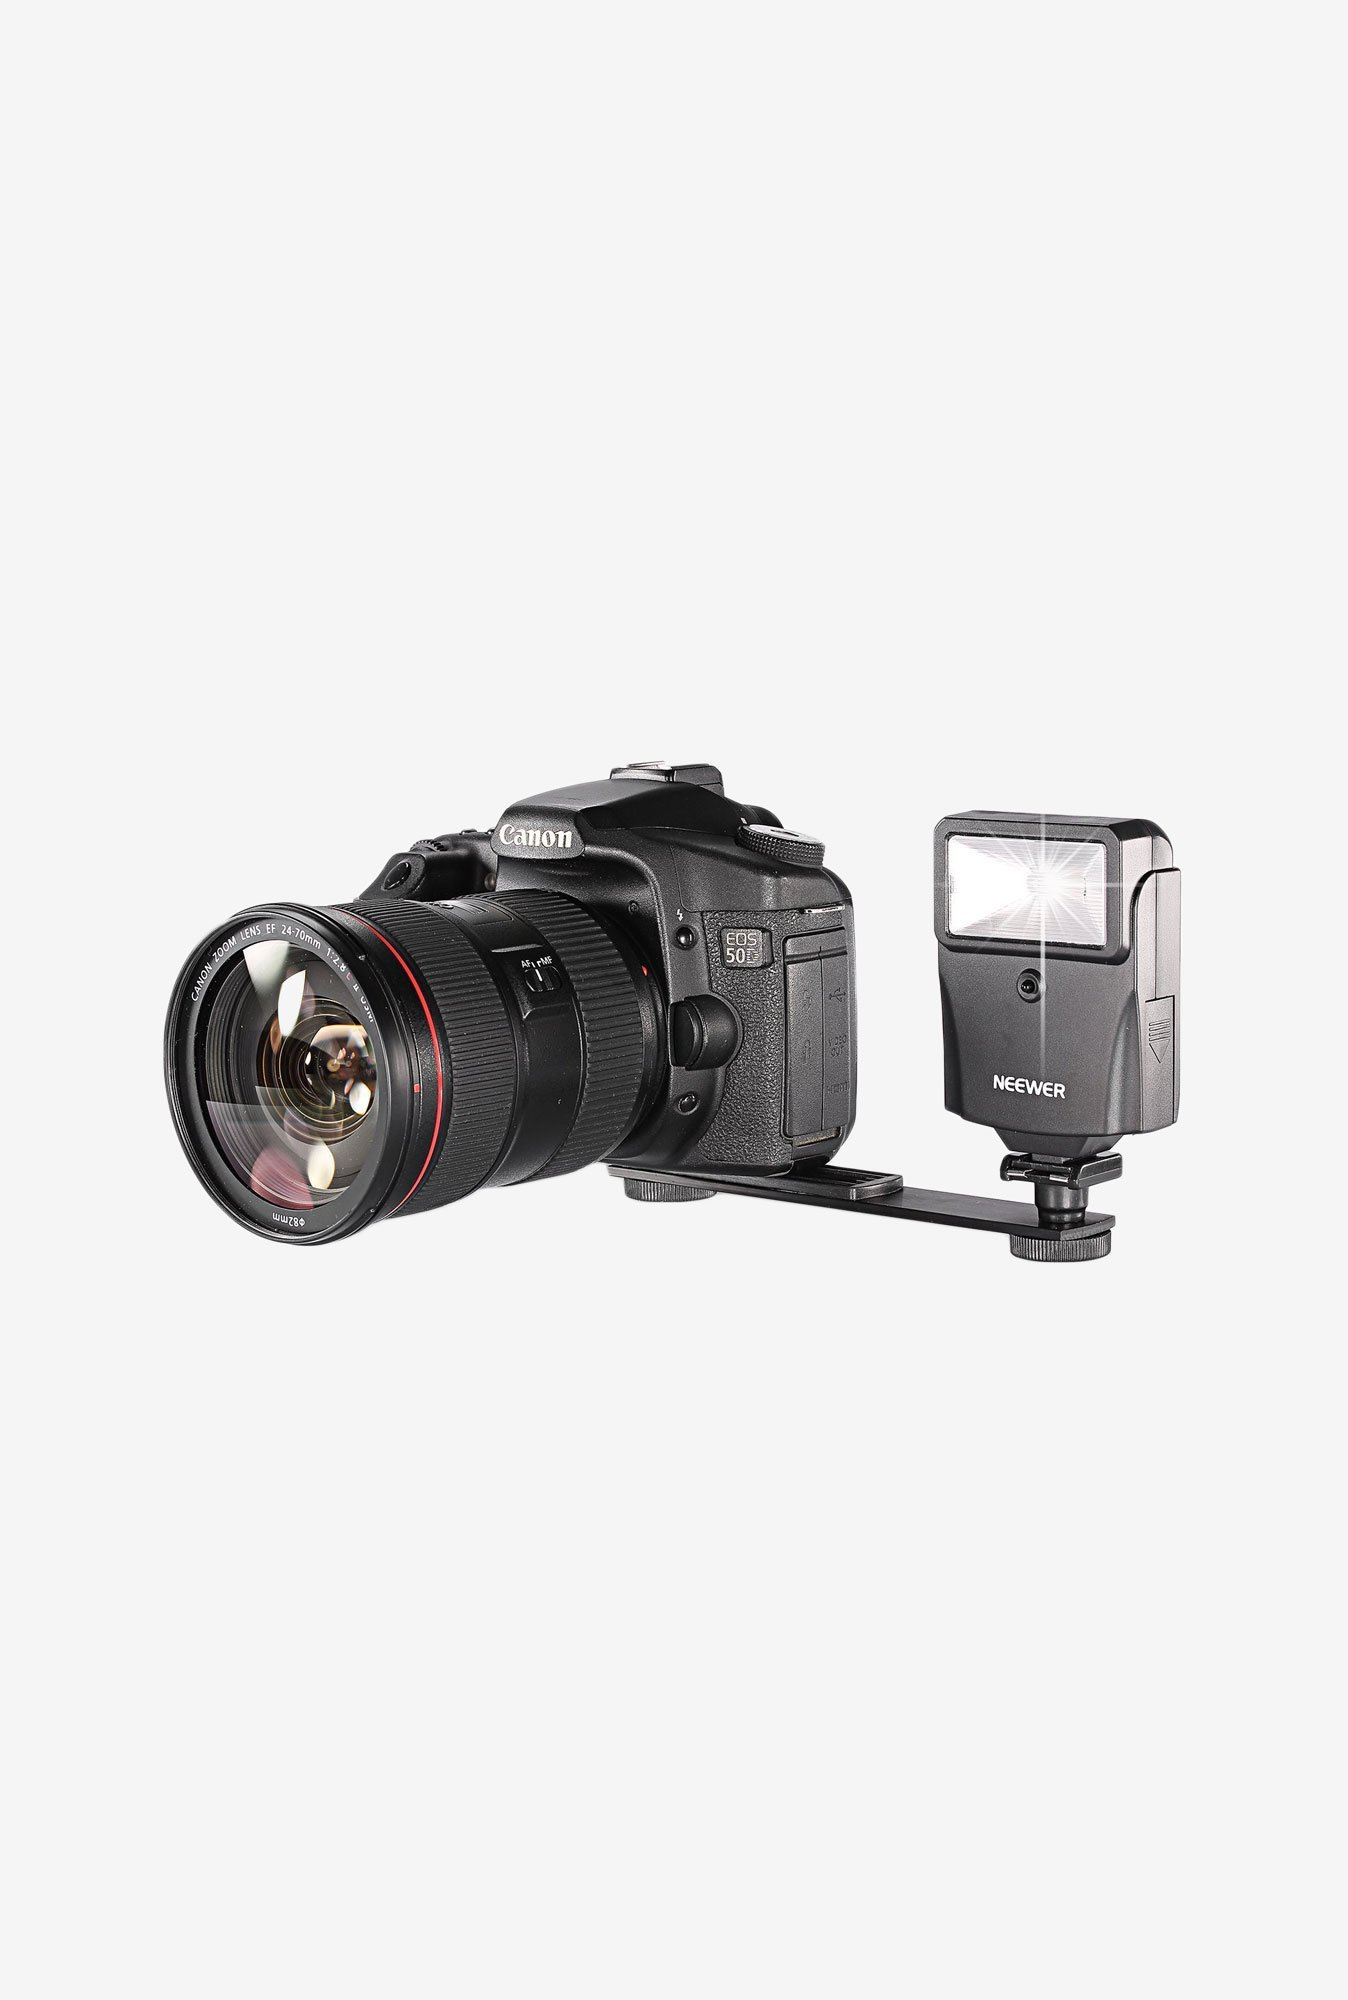 Neewer Compact Pro Digital Auto Slave Flash with Bracket Set